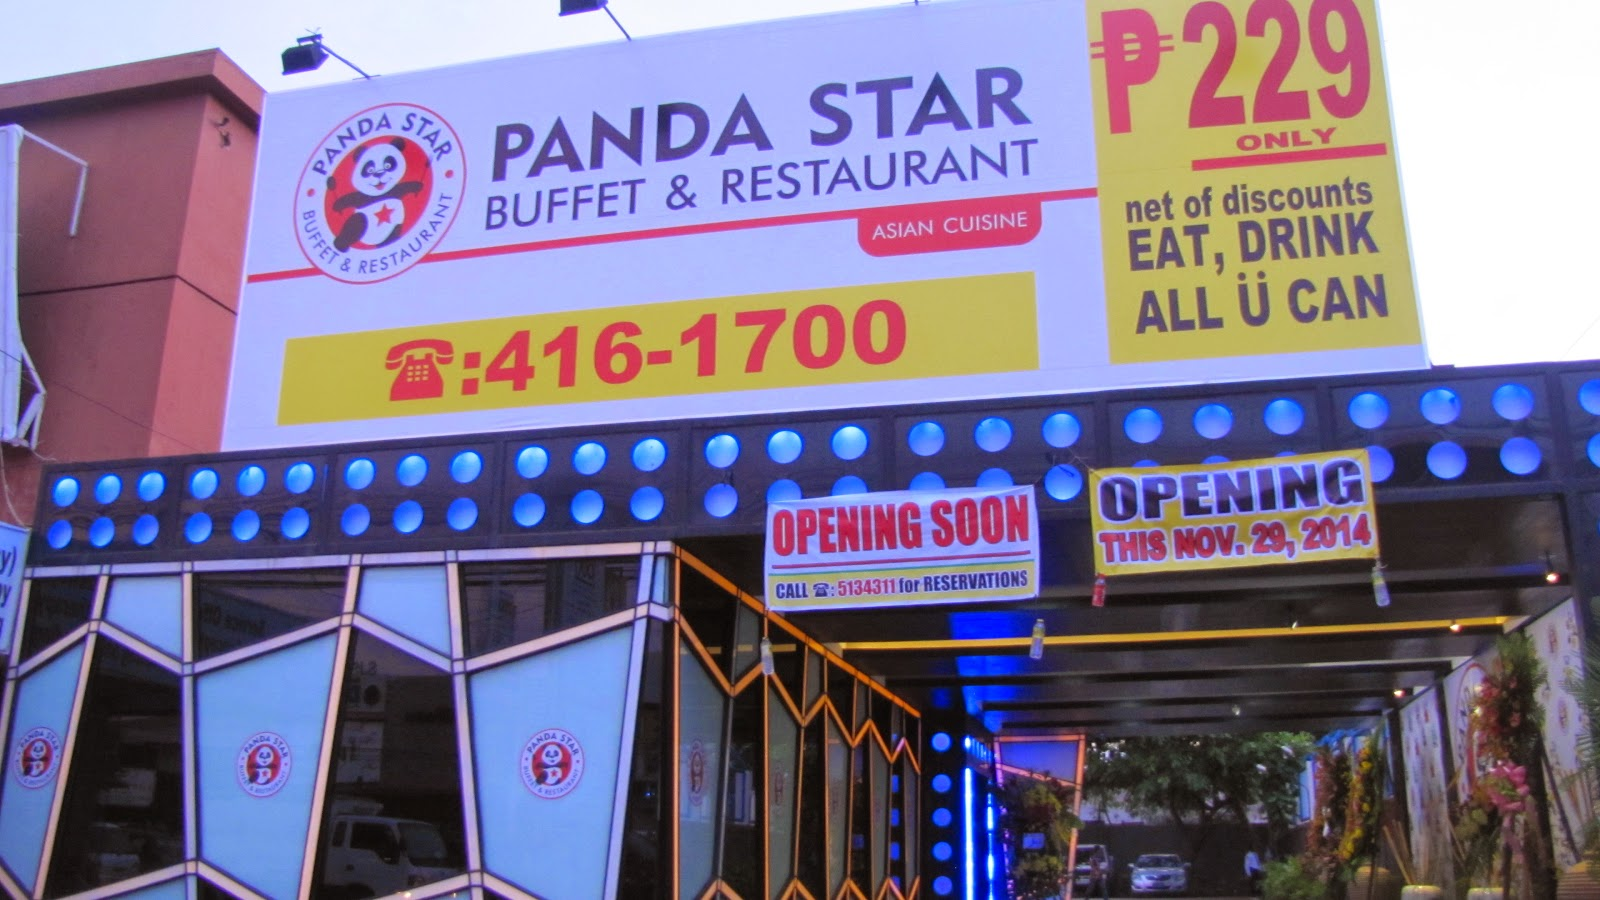 FTW! blog, Panda Star Asian Cuisine Buffet & Restaurant, Cebu Buffet, #032eatdrink, buffet, Asian Cuisine